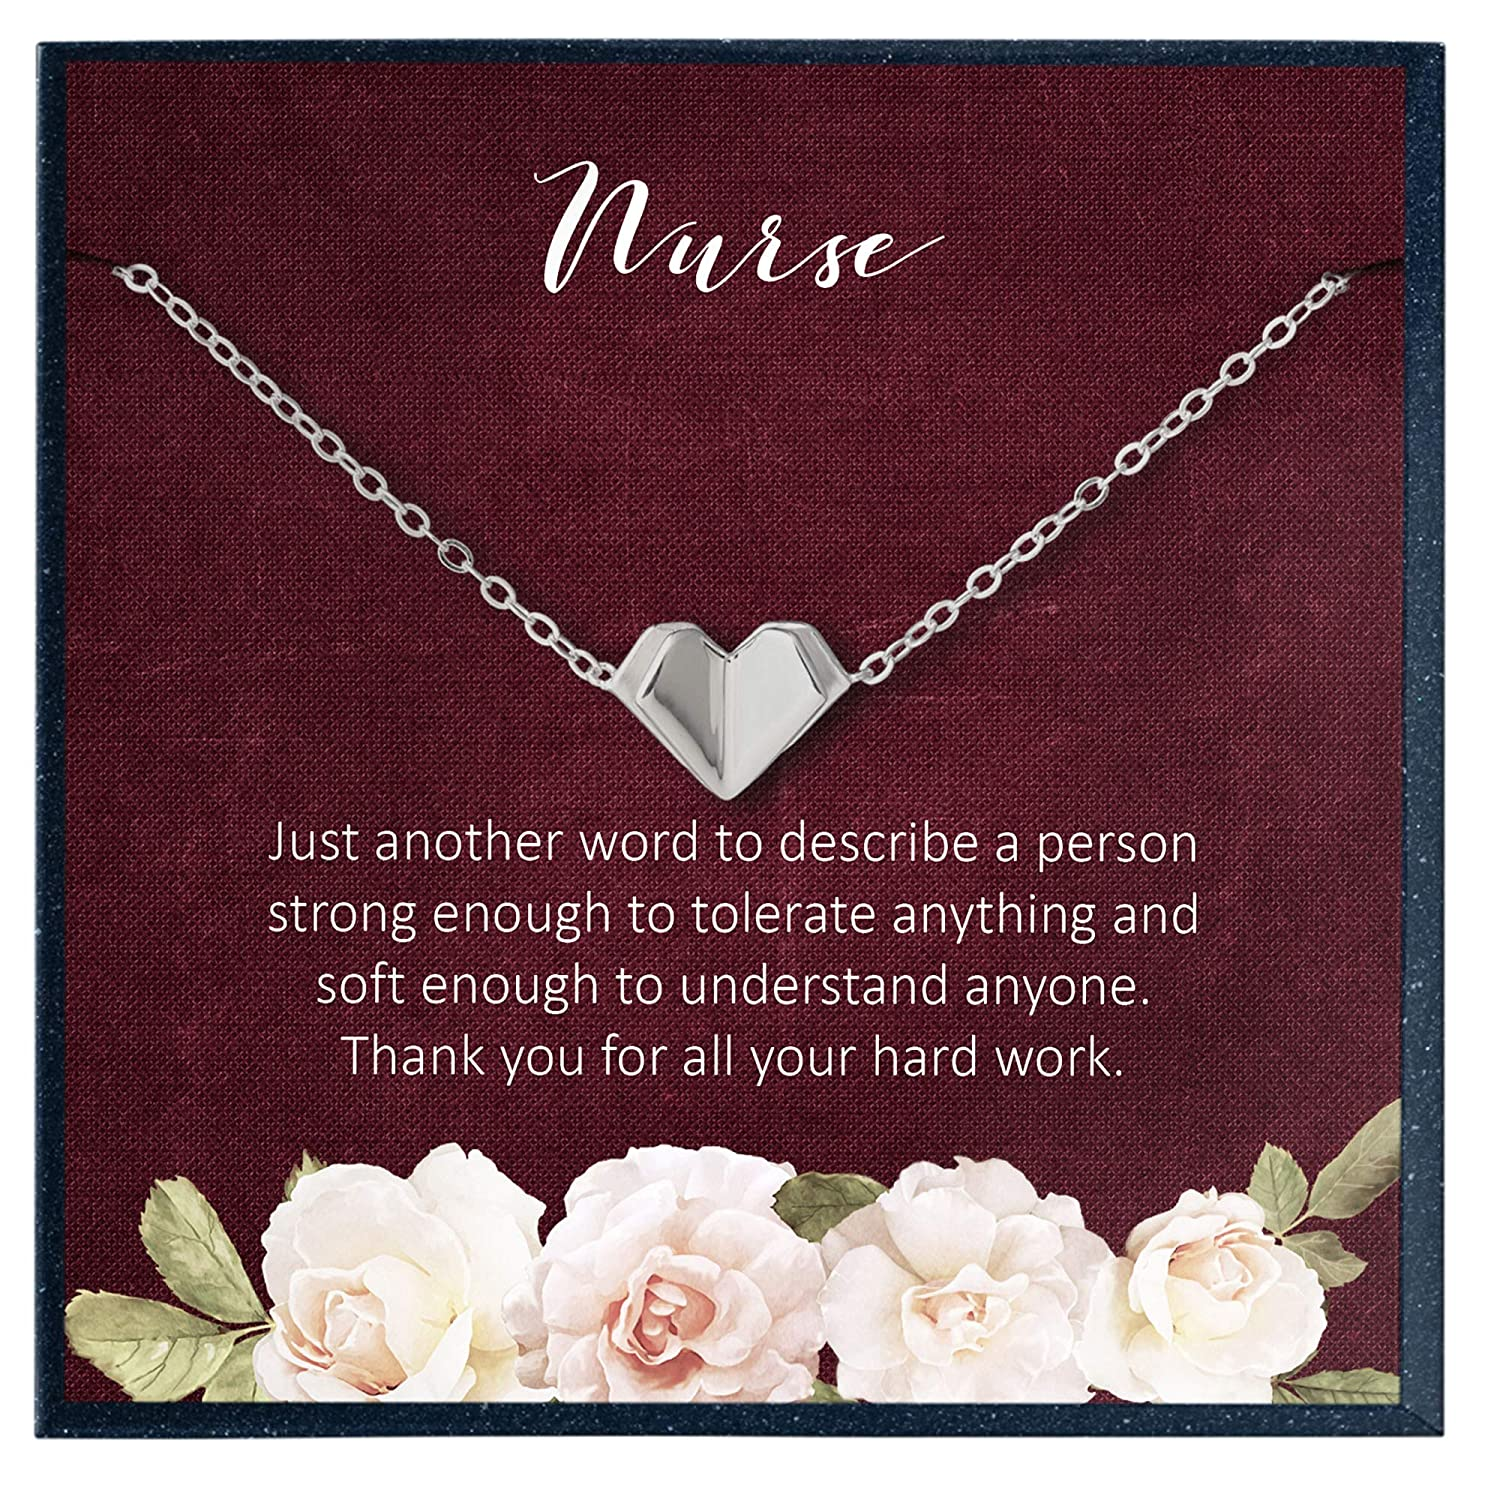 Nurse Thank You Gifts for G Gift Phoenix Mall Ideas 5 ☆ very popular Practitioner